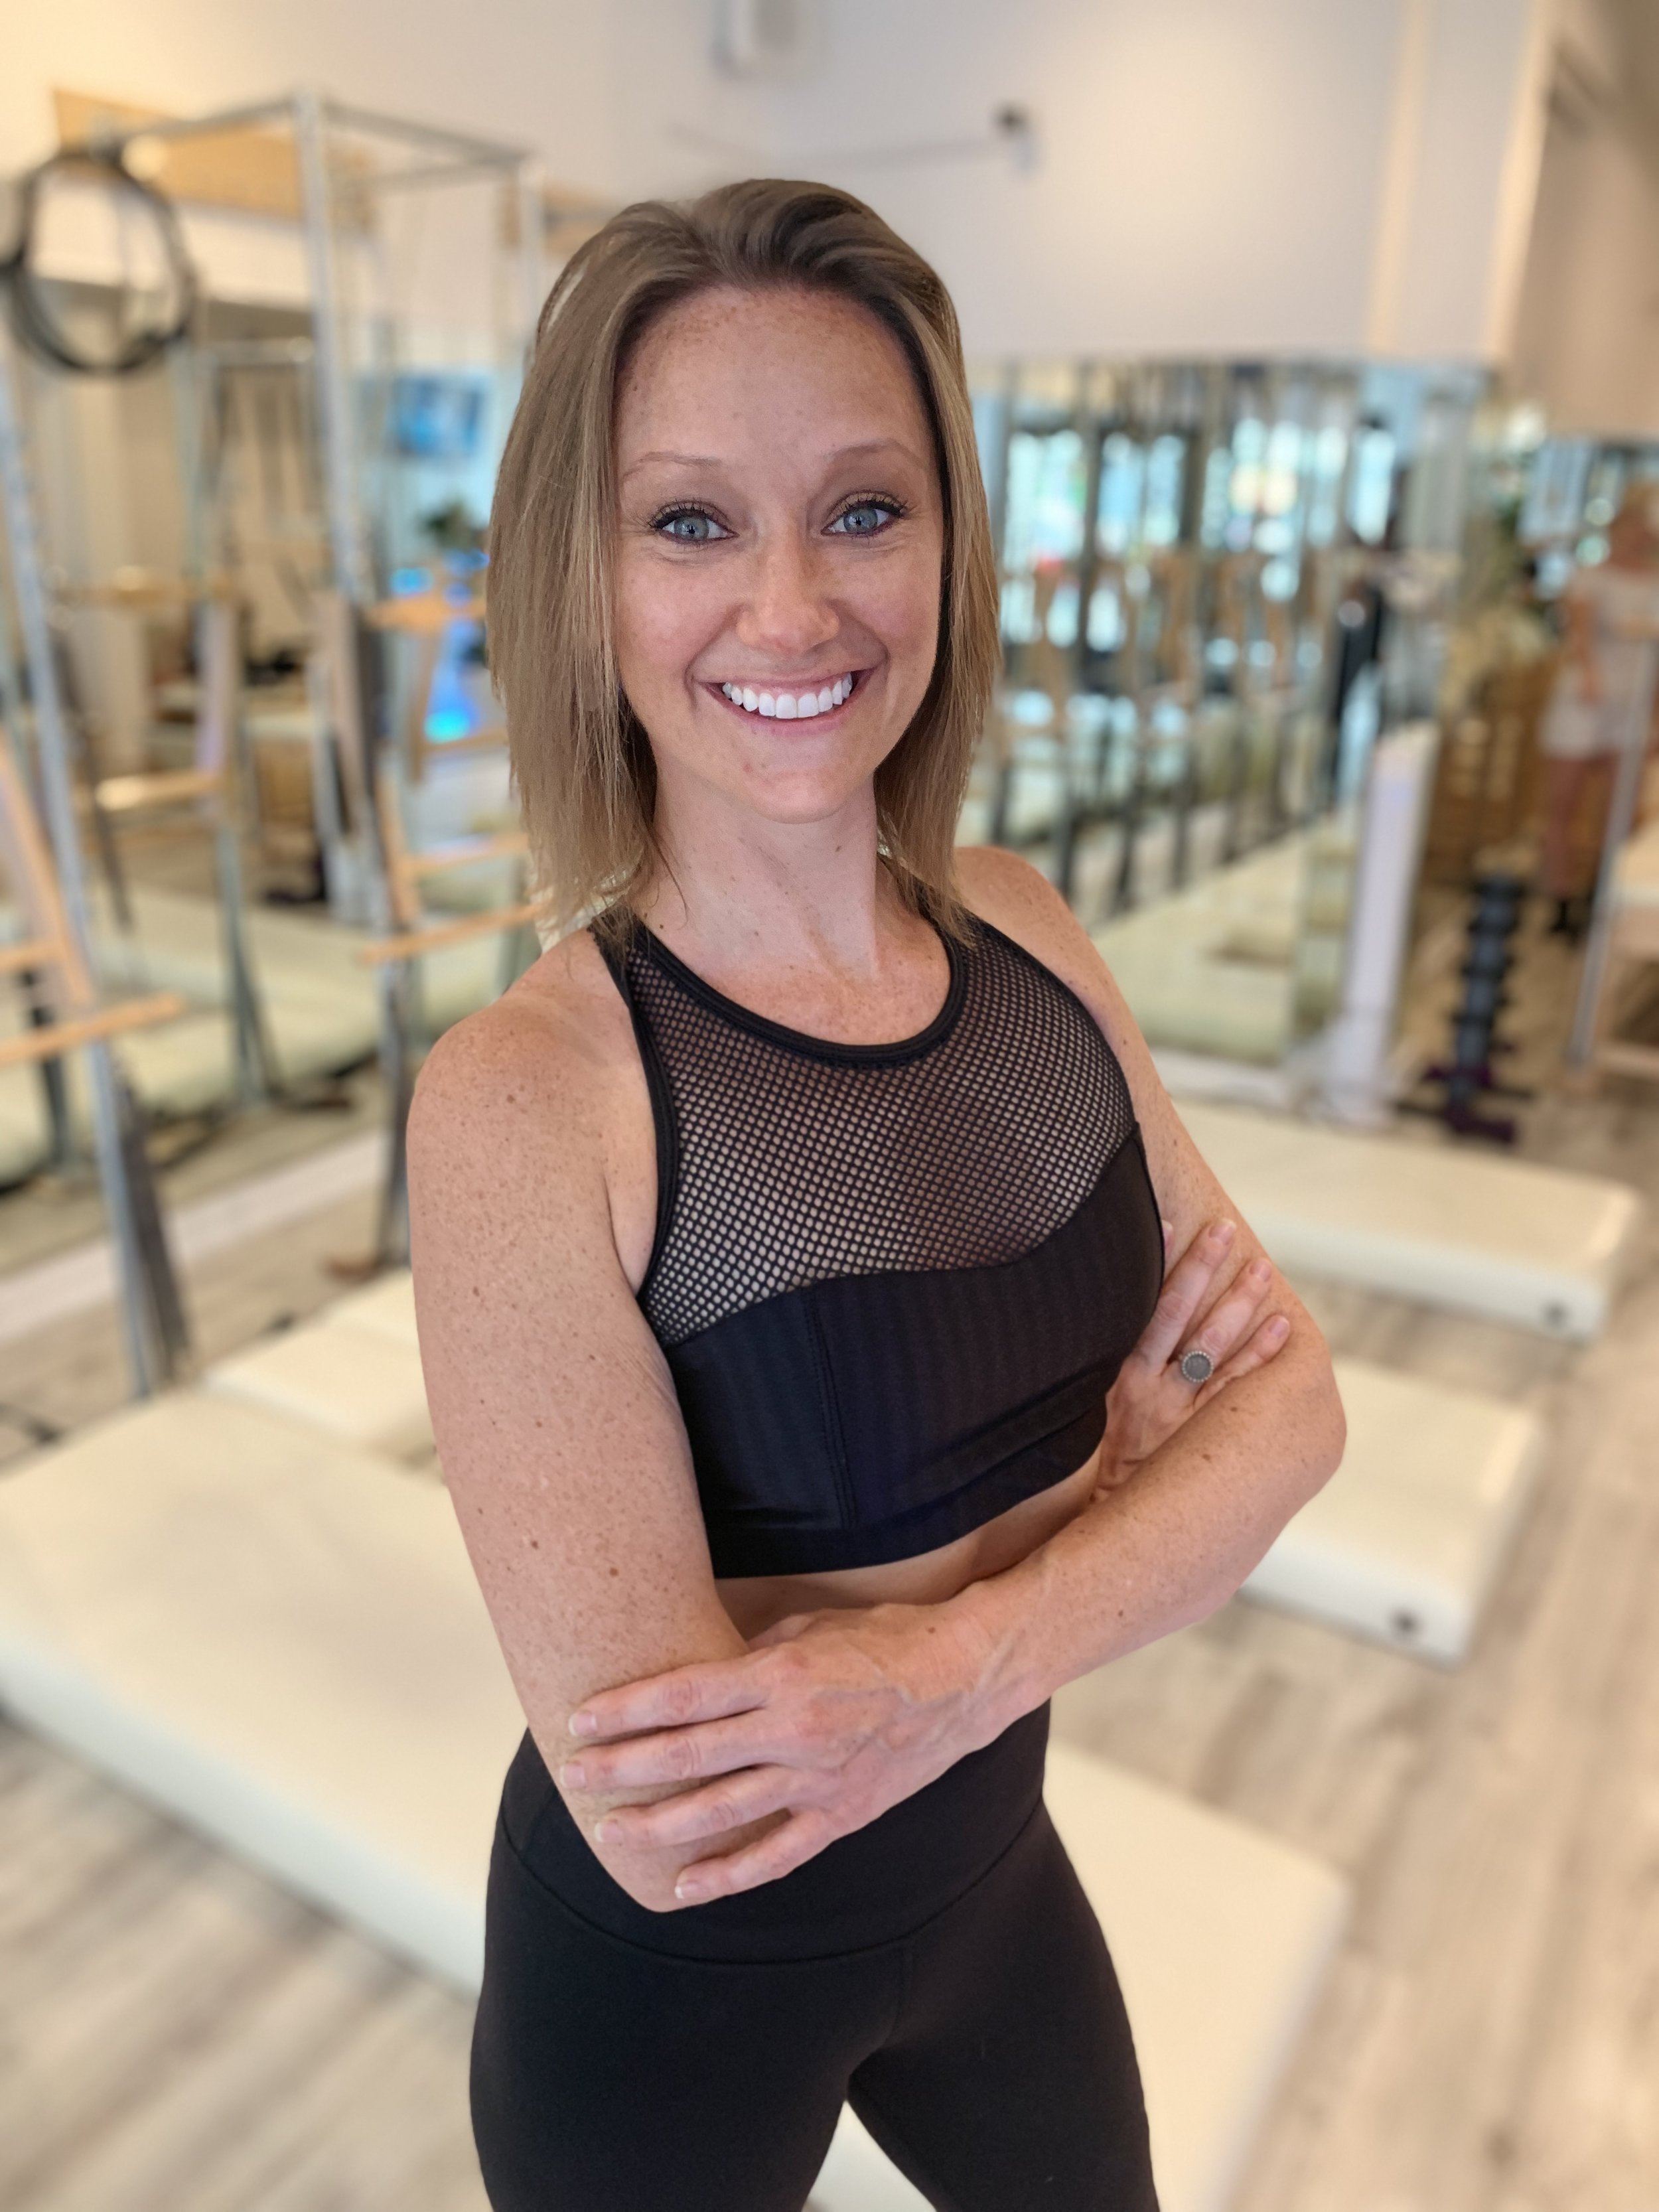 Katrina   Katrina loves how Pilates changed her body, increased her energy level and improved her posture. Katrina's exudes excitement about Pilates and her students cant help but feel the same. Her teaching is dynamic and spirited. You can always expect a nice smile and joyful attitude when taking her class.